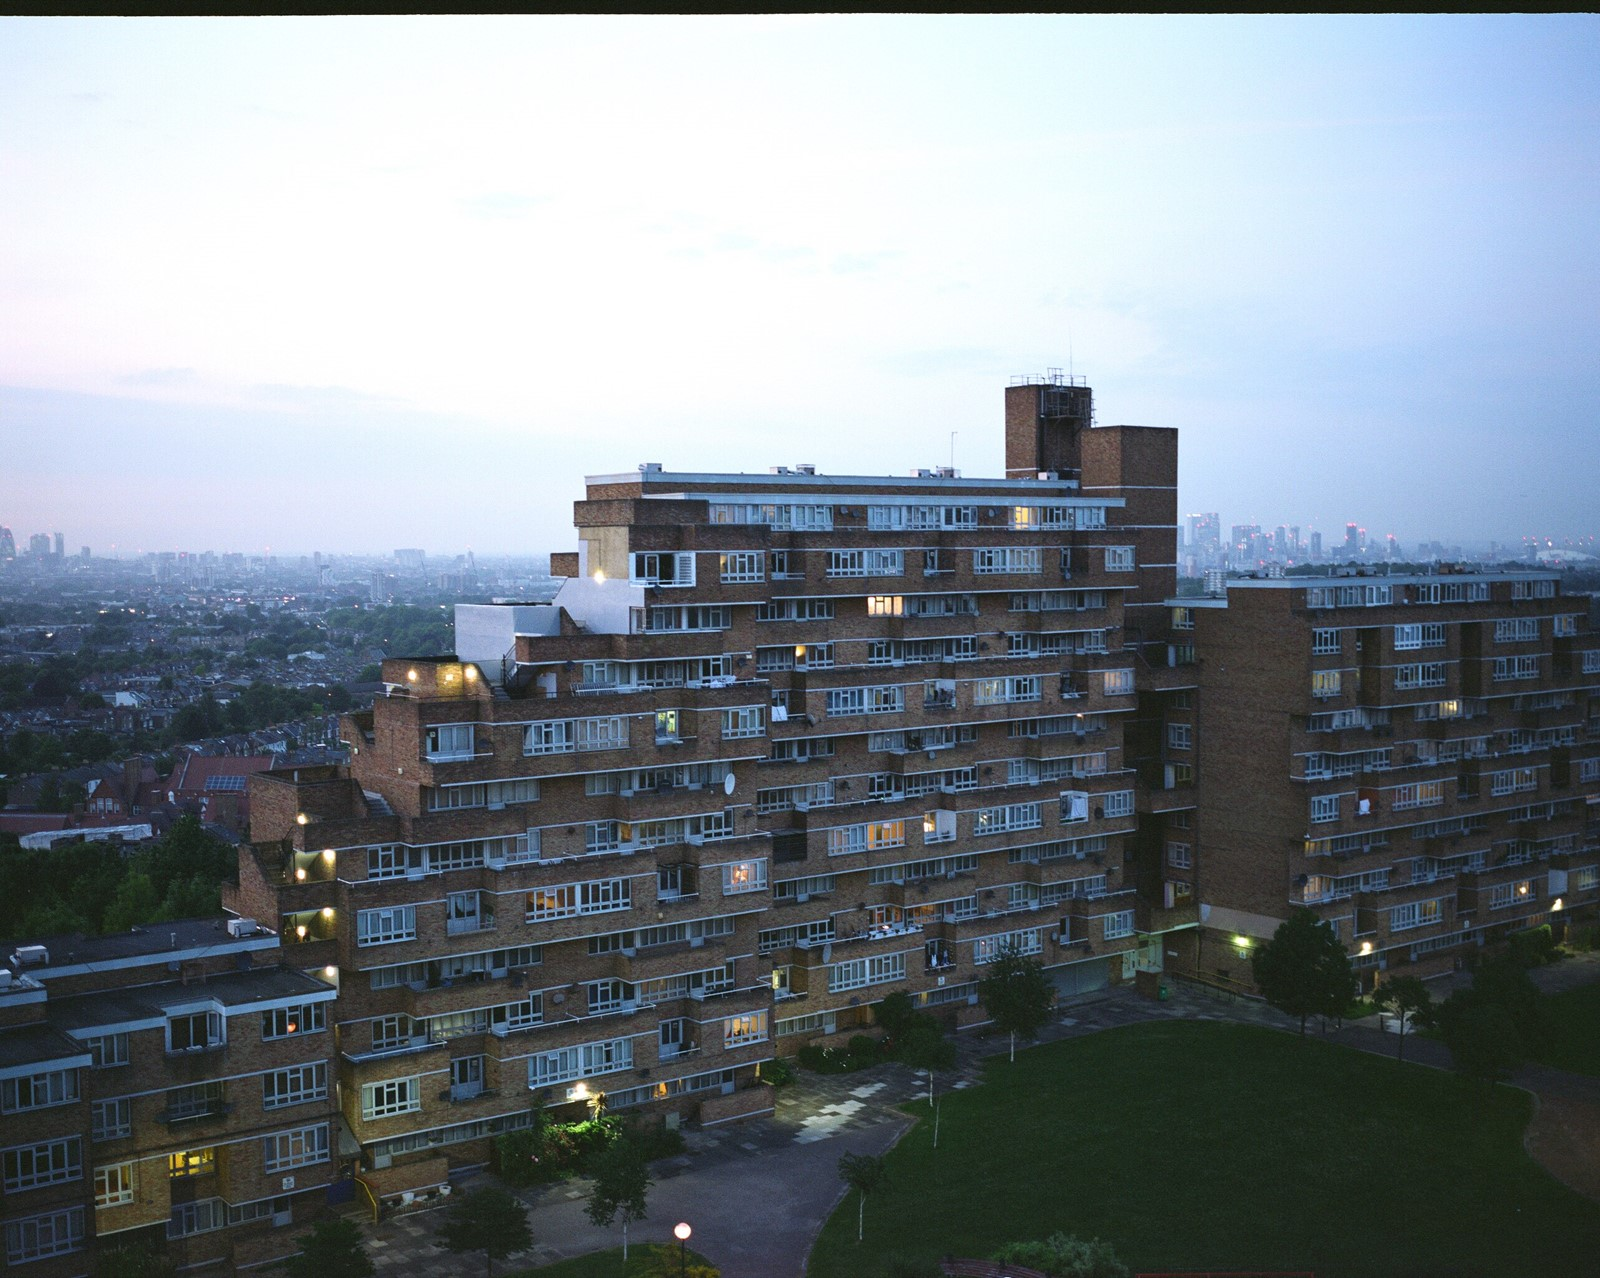 Dawson's Heights estate in East Dulwich Post War Housing